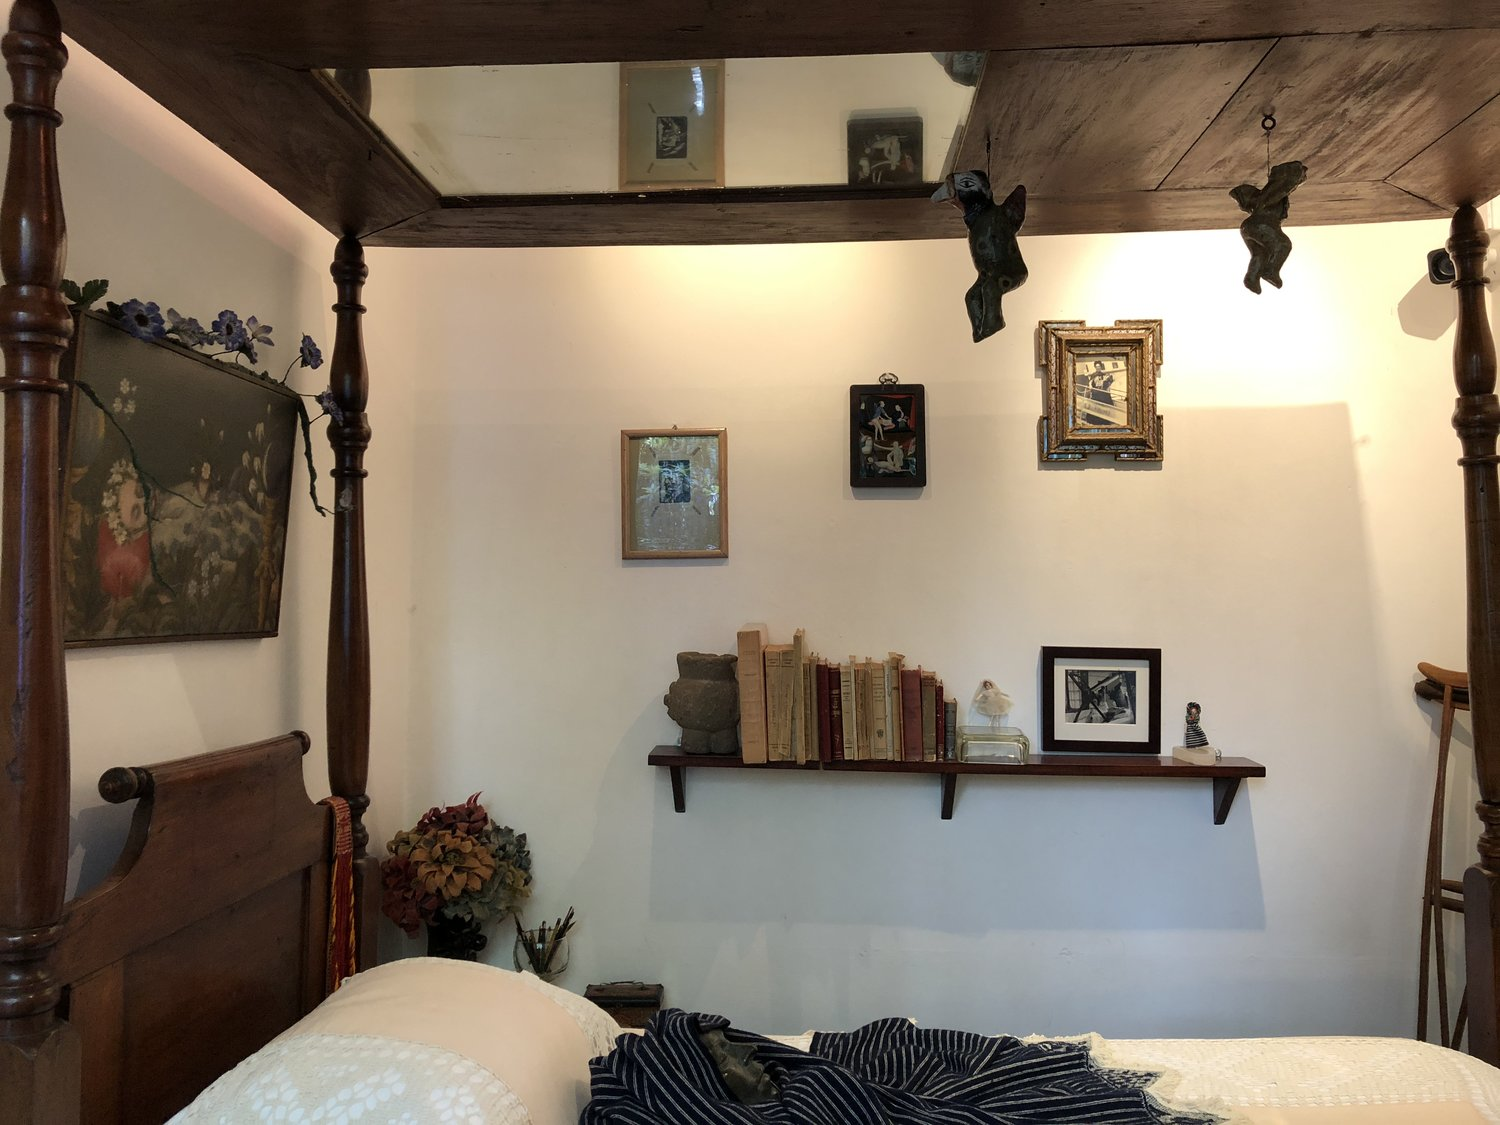 One can argue that her bed was also her studio. Having spent the majority of her life in it. The mirror on top was used for her self-portraits.